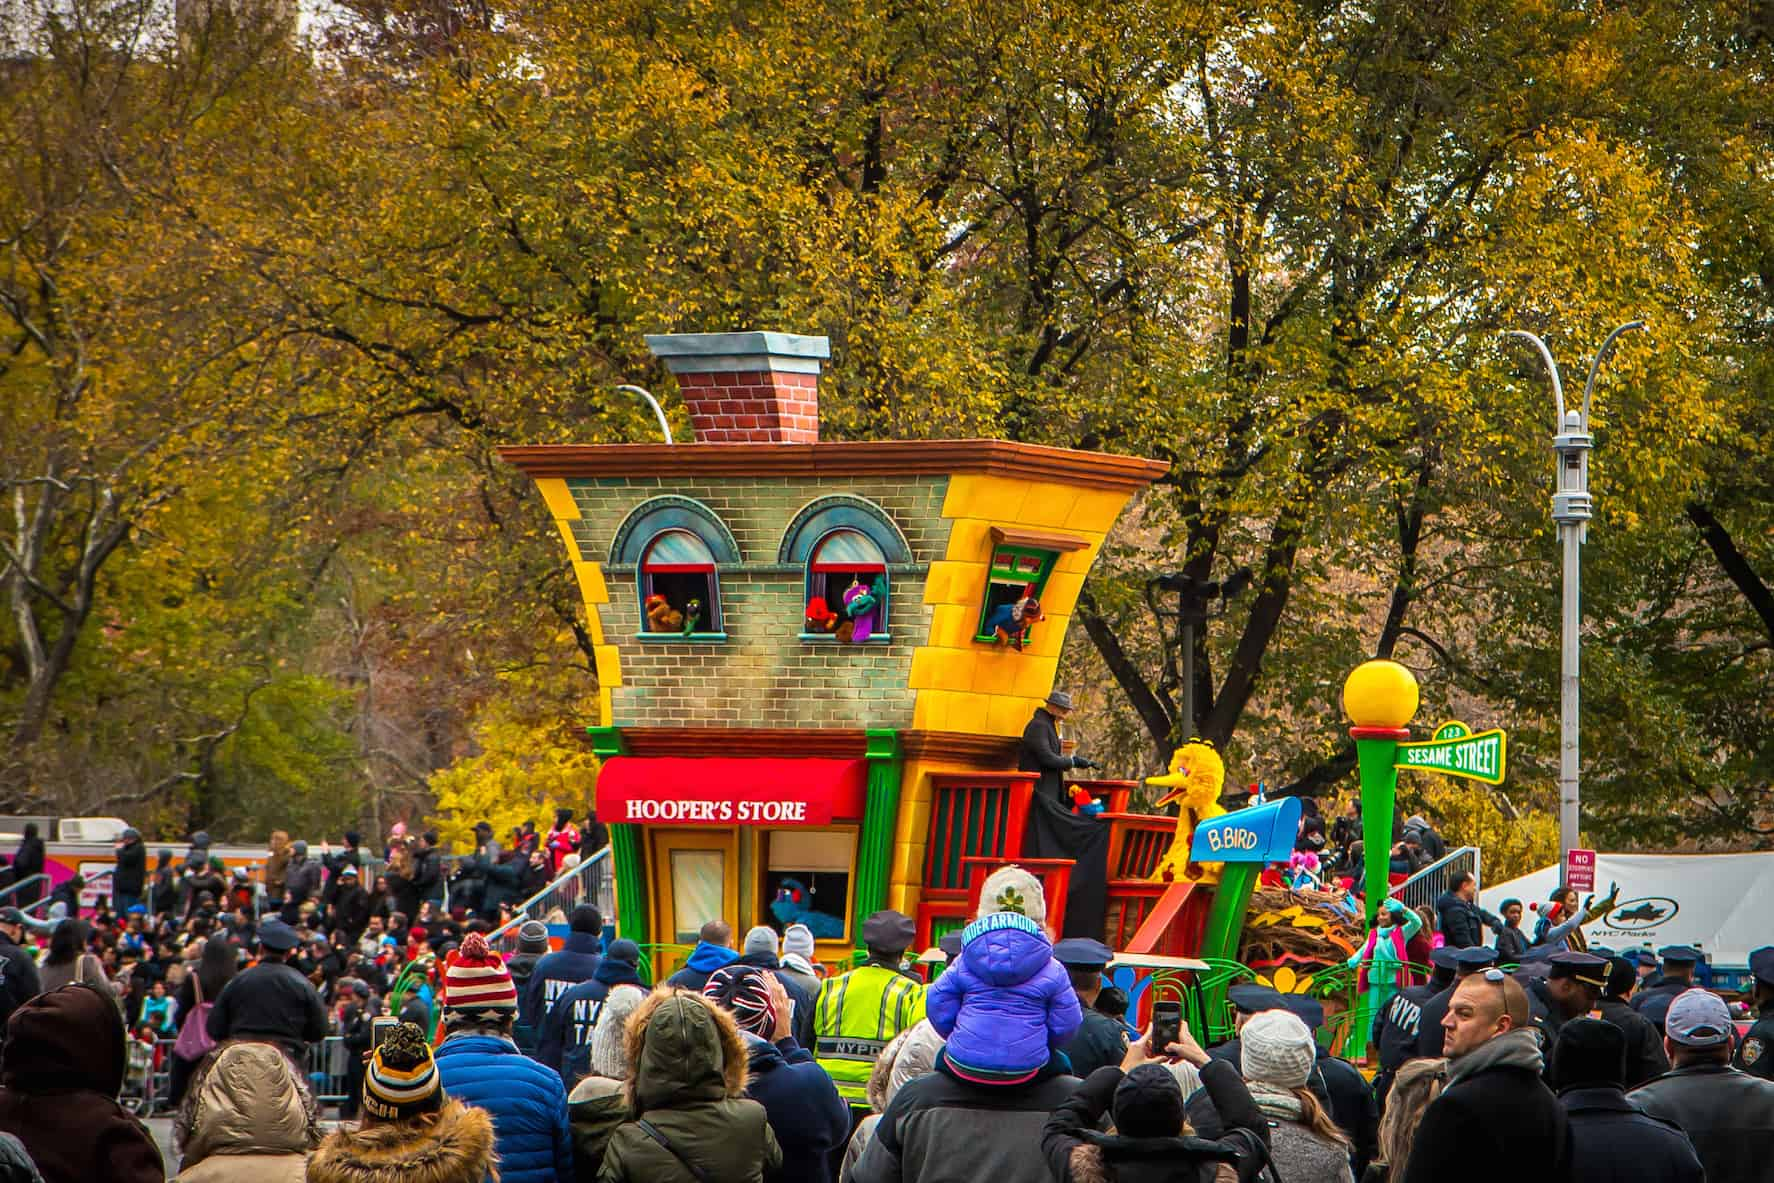 90th macy's thanksgiving day parade- Big Bird & Sesame Street